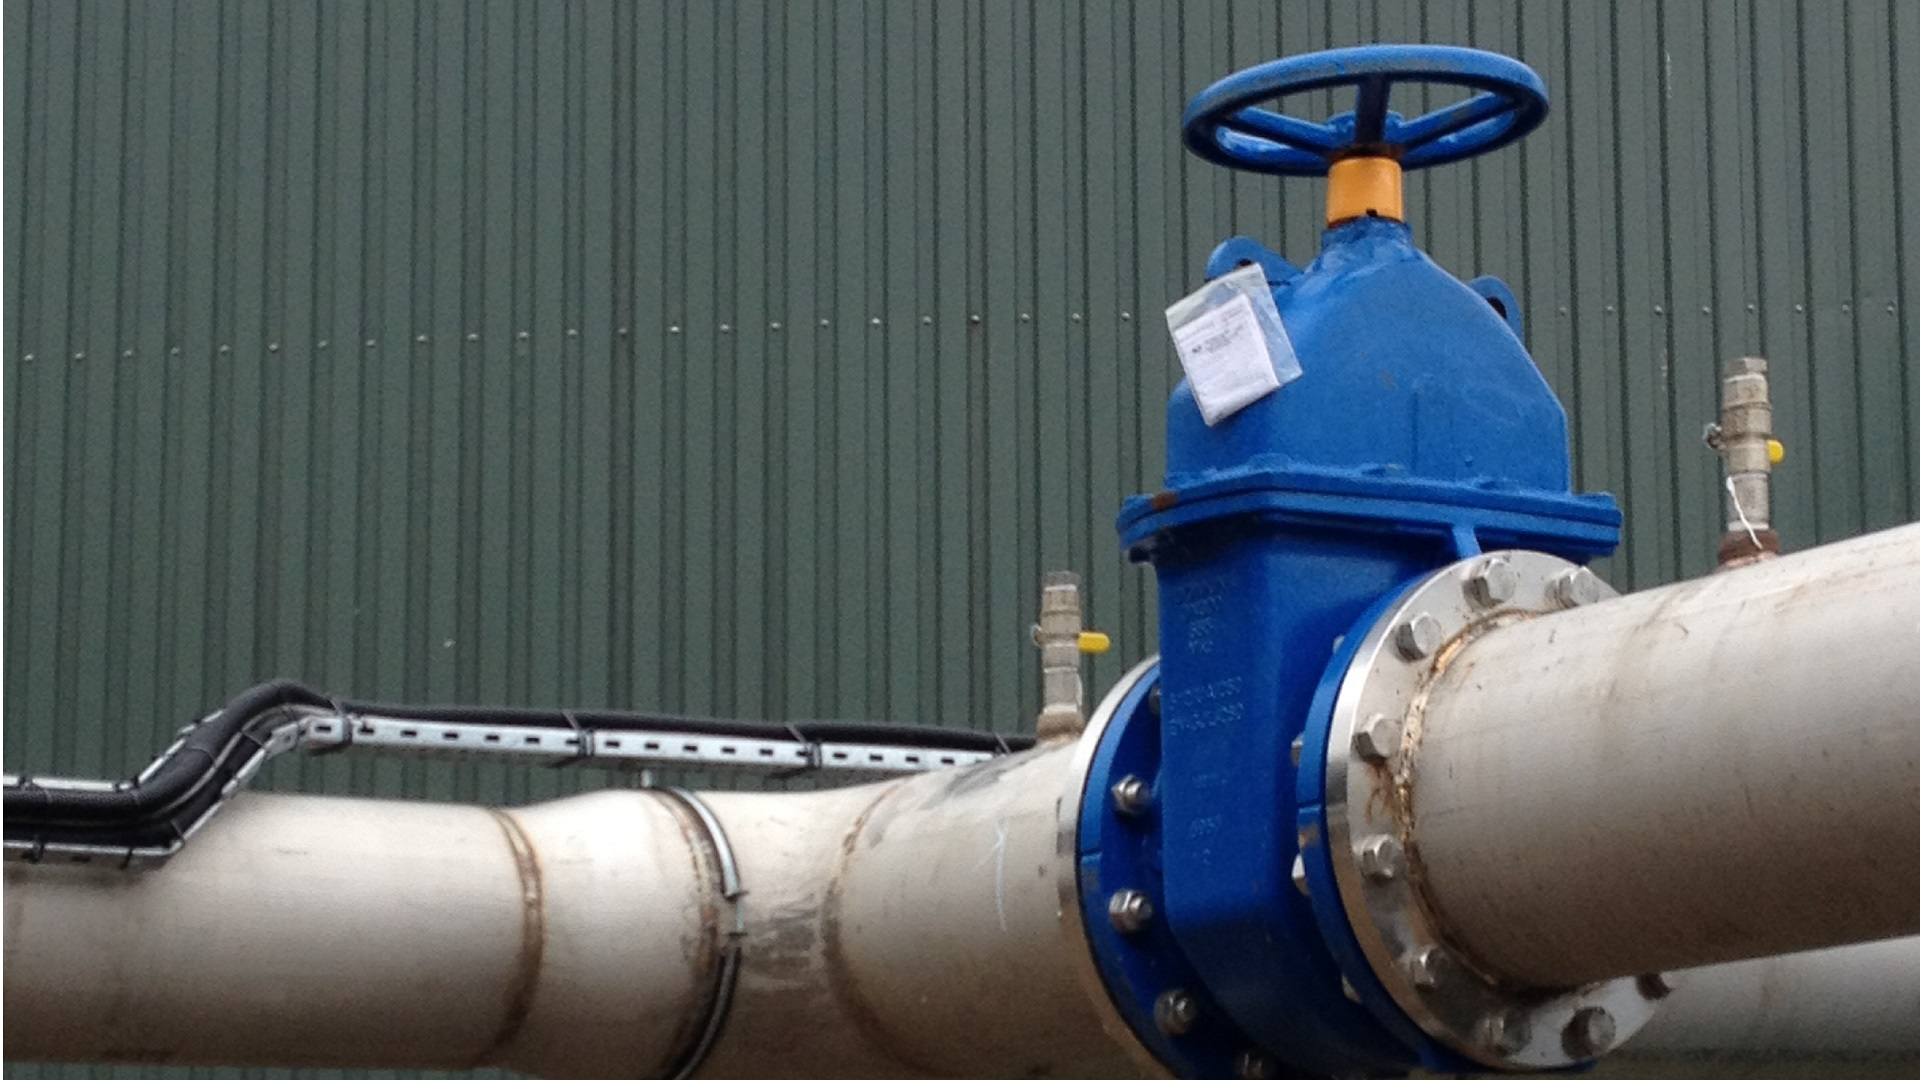 Bio gas and renewable gas products